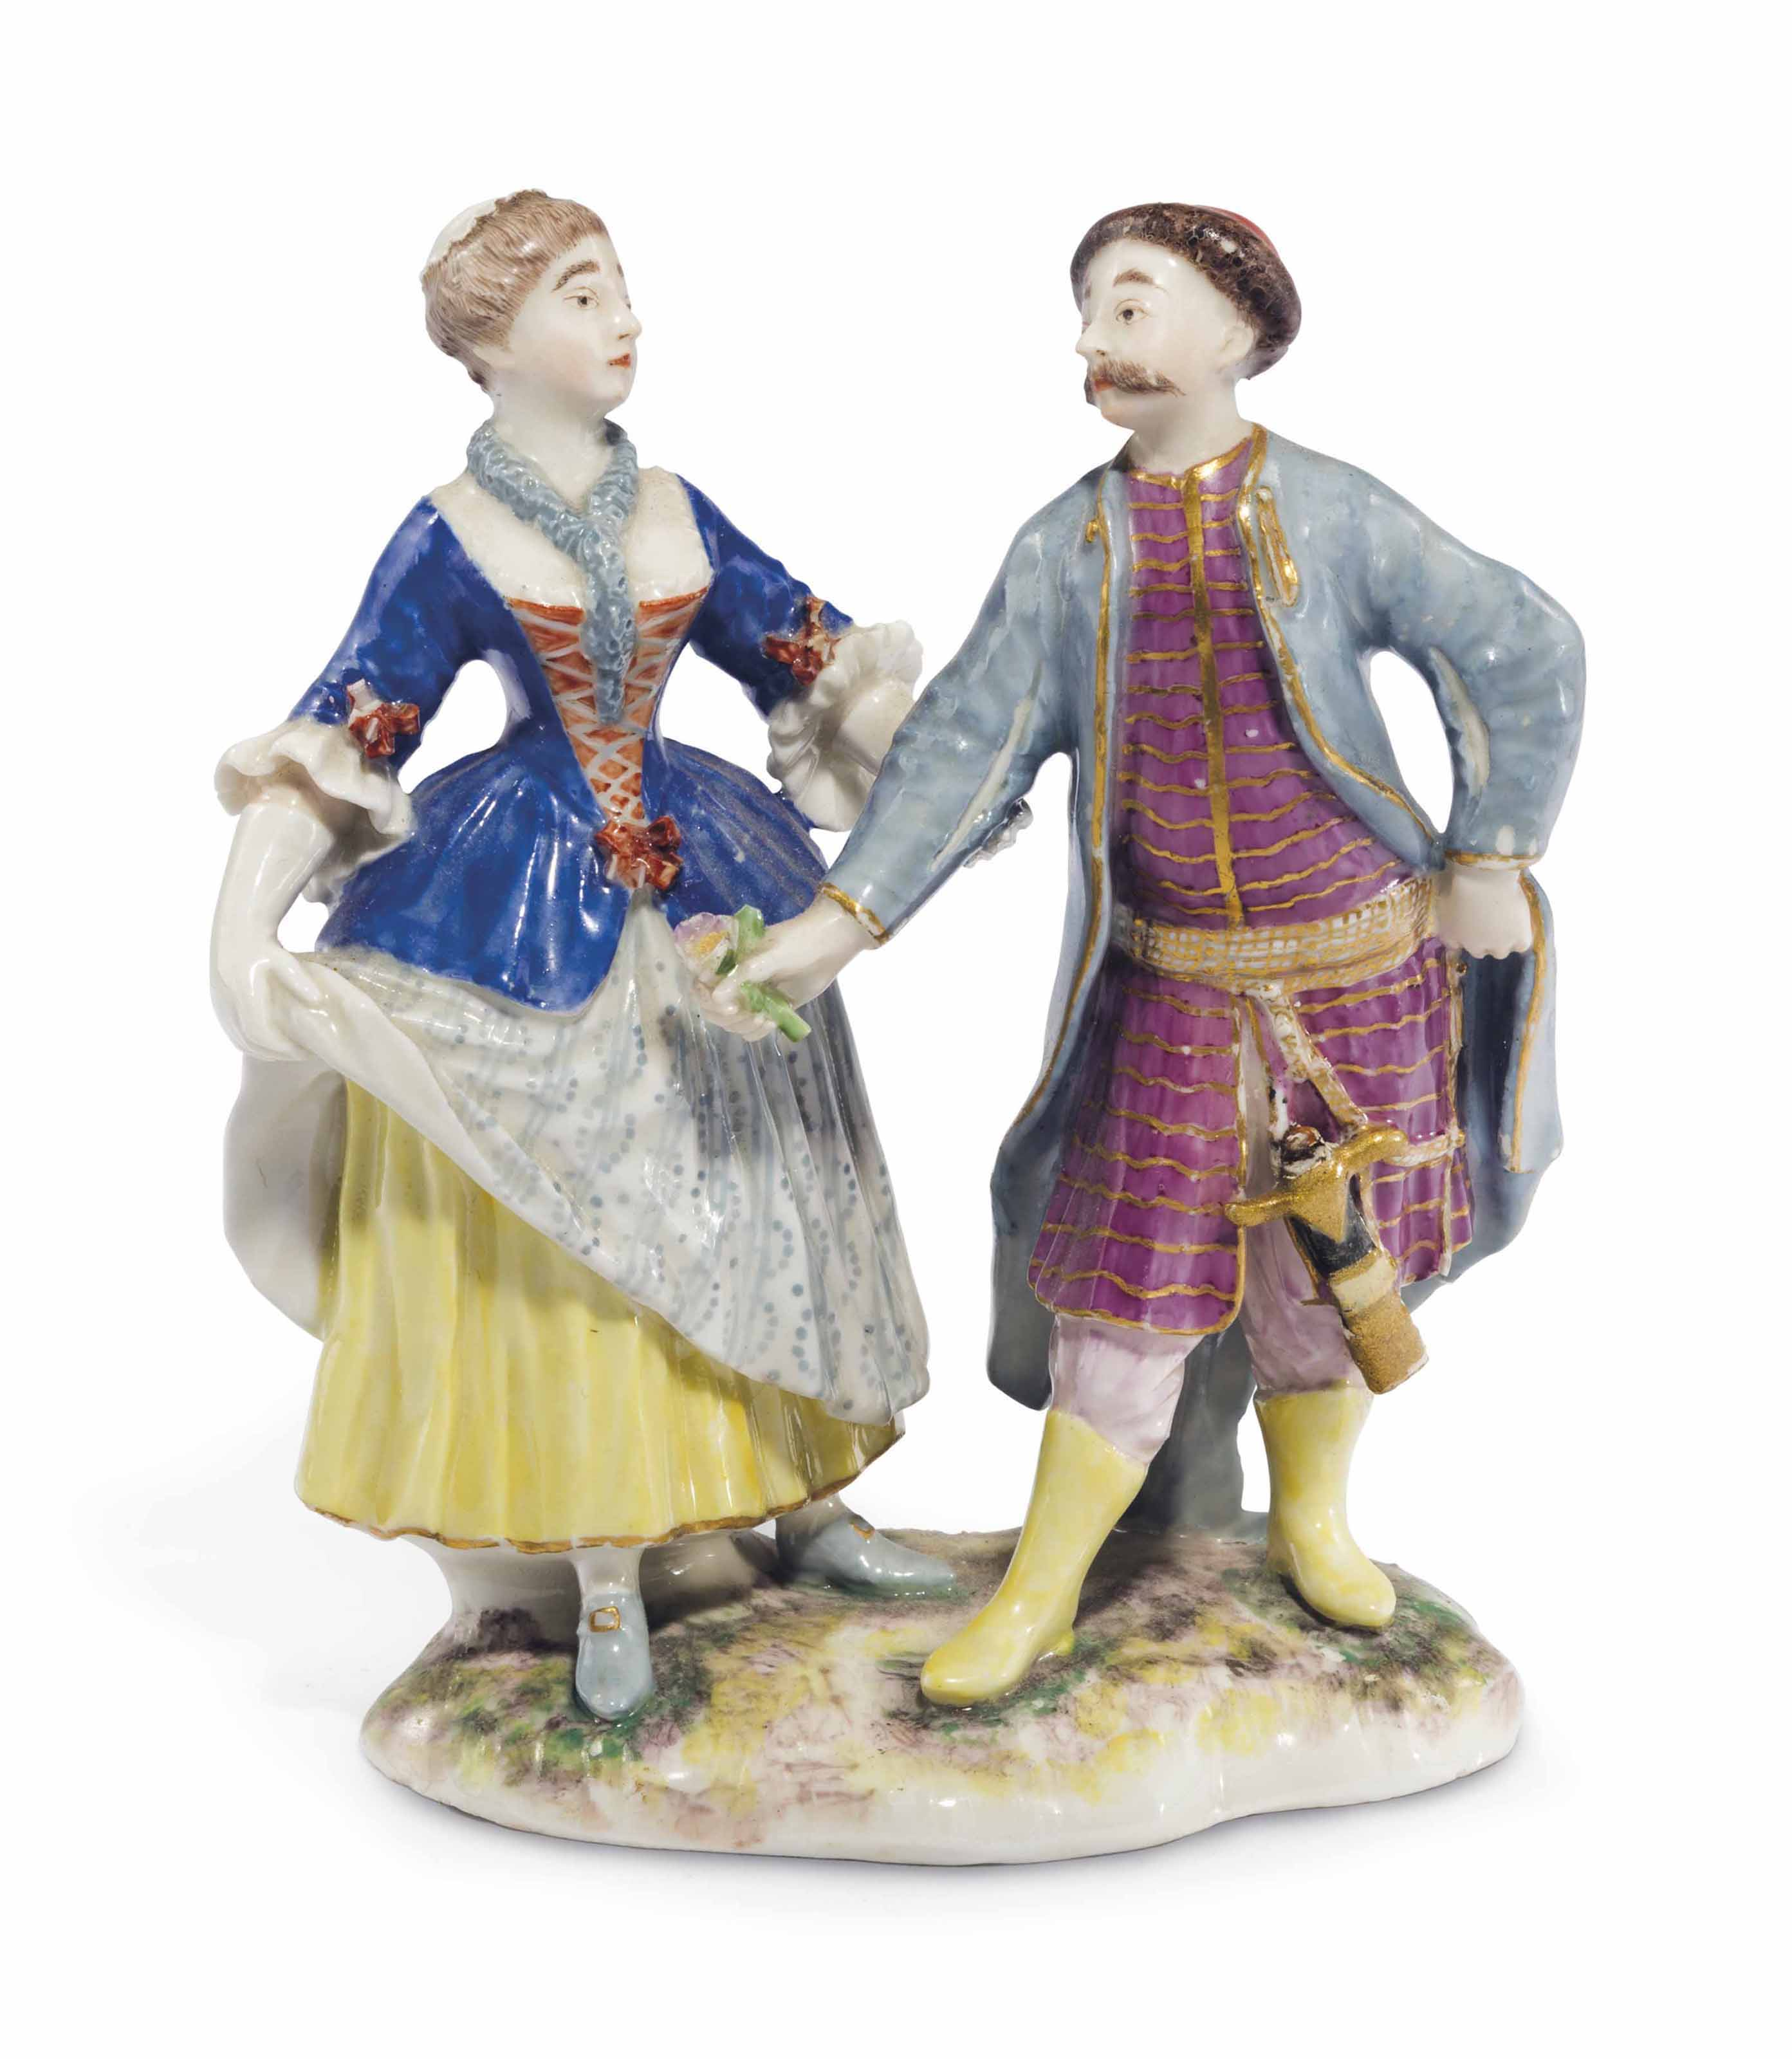 A LUDWIGSBURG PORCELAIN GROUP OF A TURK AND COMPANION